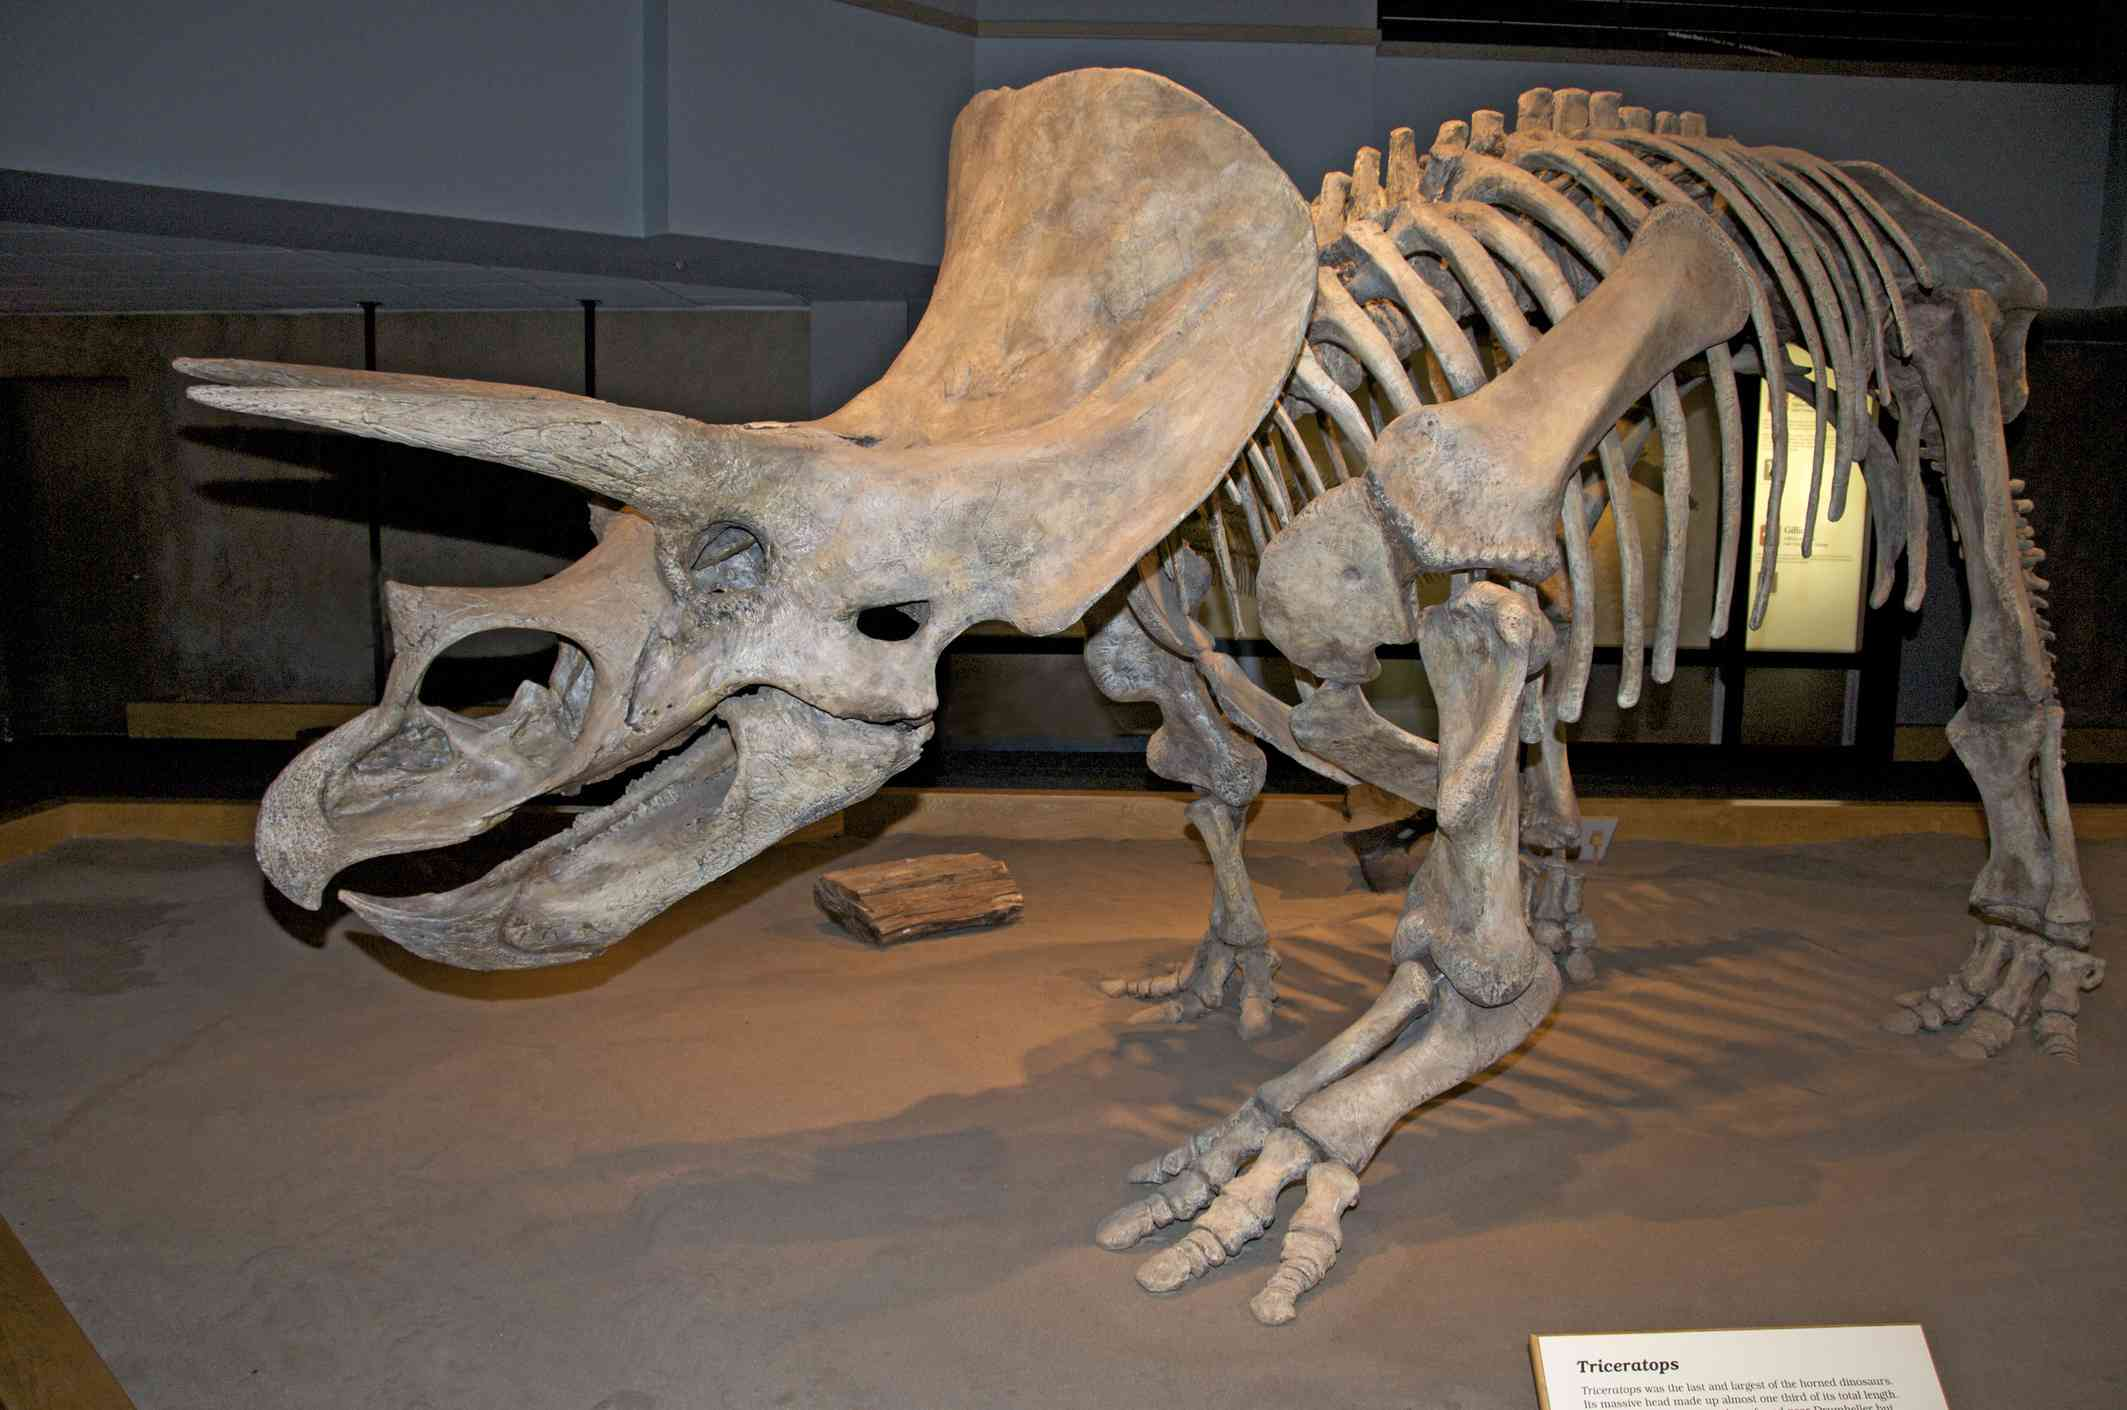 Triceratops horridus skeleton on display at the Royal Tyrrell Museum in Alta, Canada